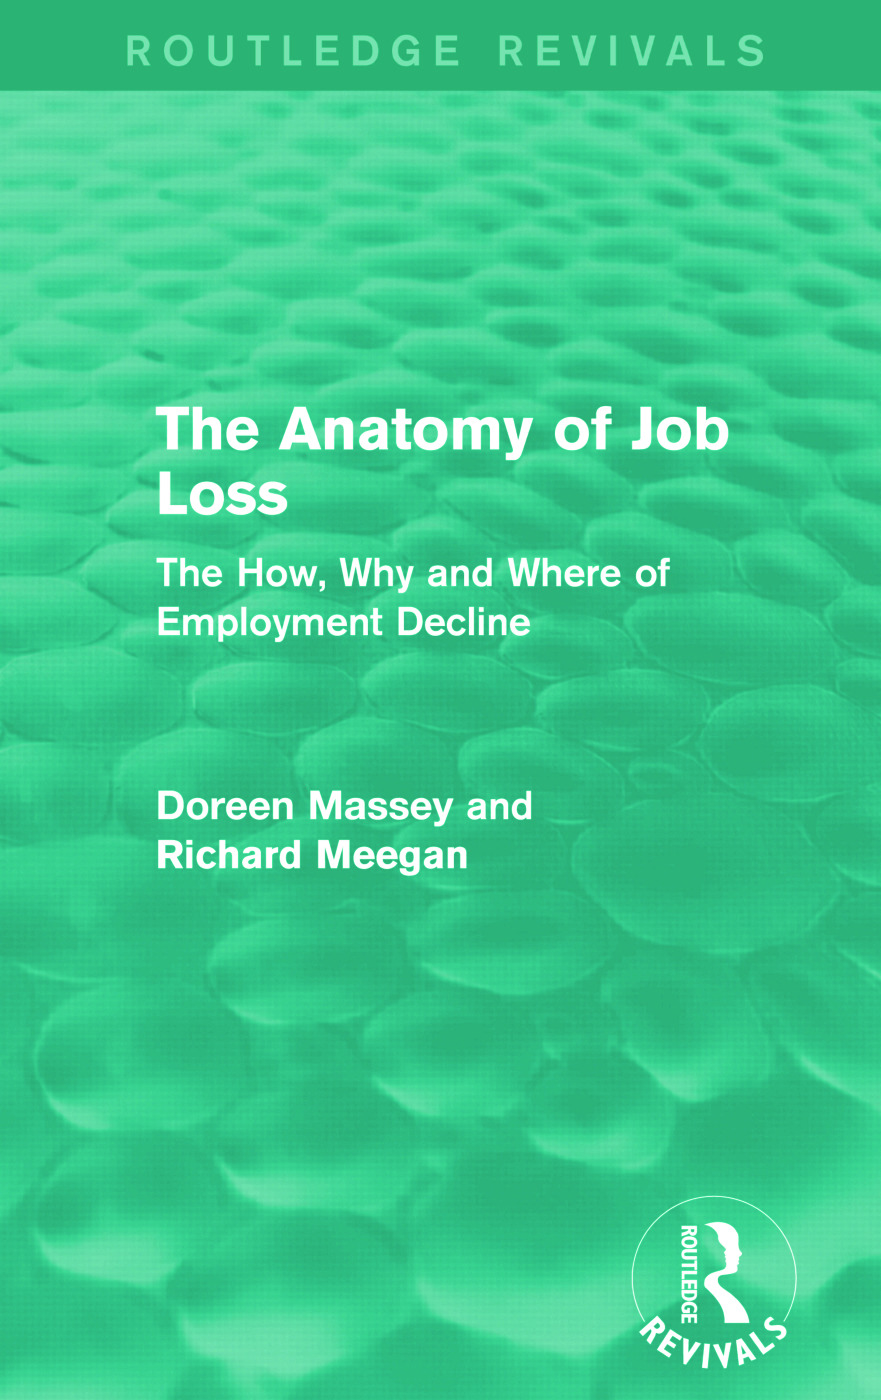 The Anatomy of Job Loss (Routledge Revivals): The how, why and where of employment decline, 1st Edition (Paperback) book cover